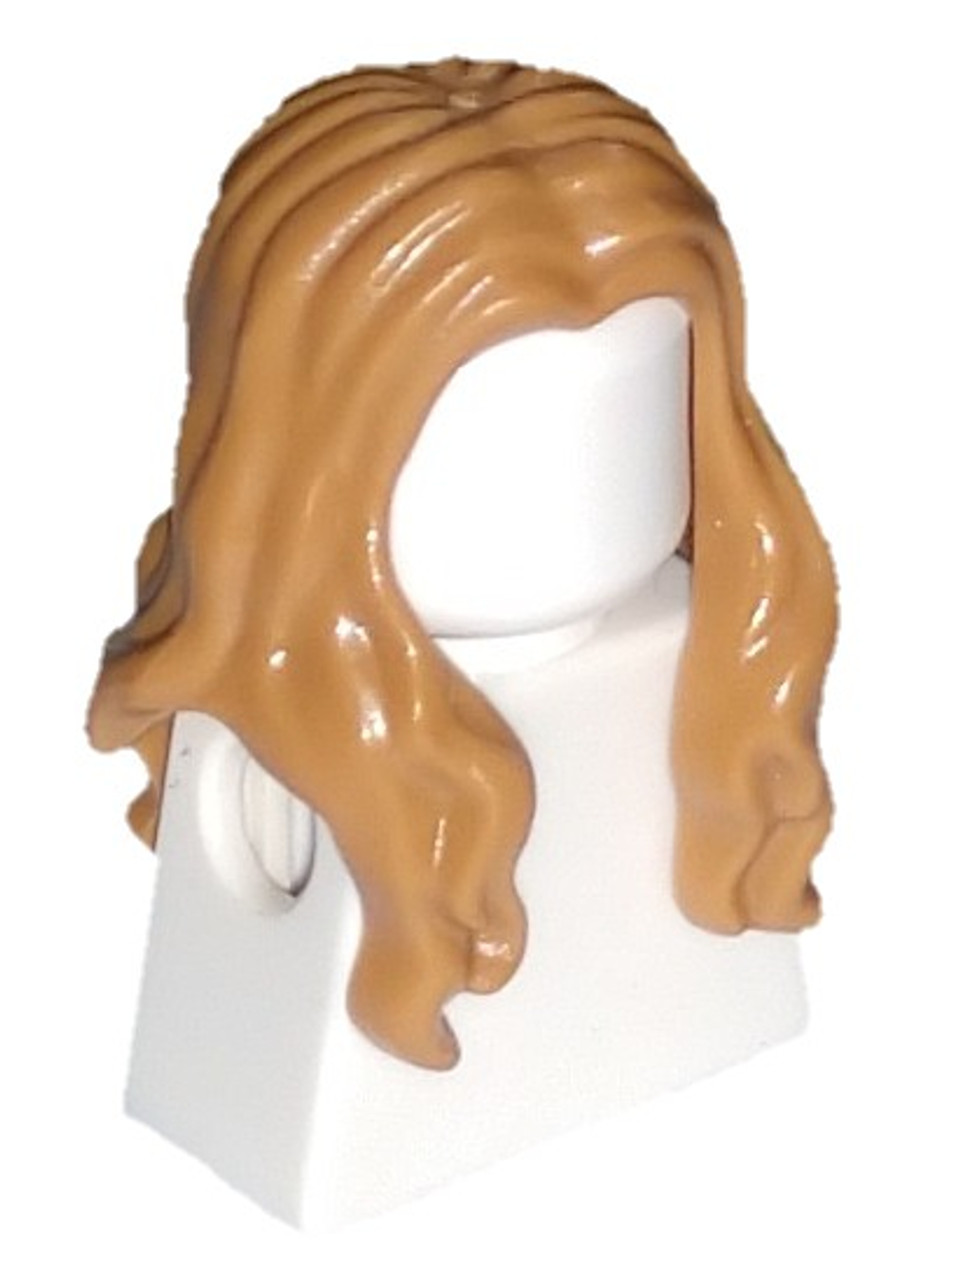 Lego Hair Long Wavy with Center Part x 1 Black for Minifigure